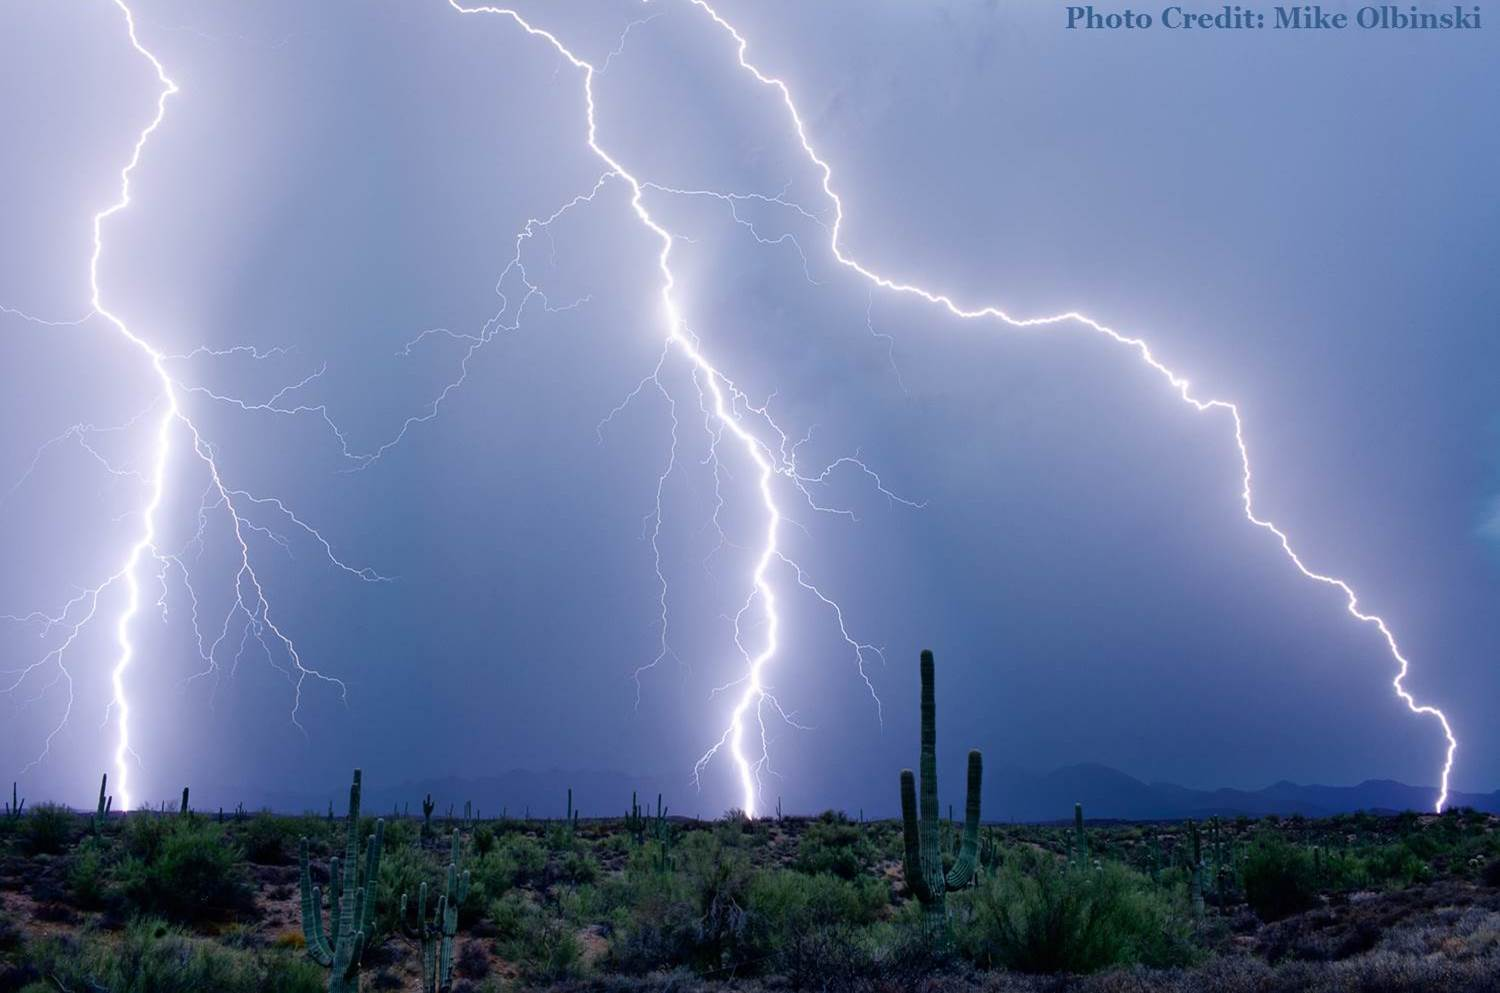 Desert Lightning - Credit: Mike Olbinski